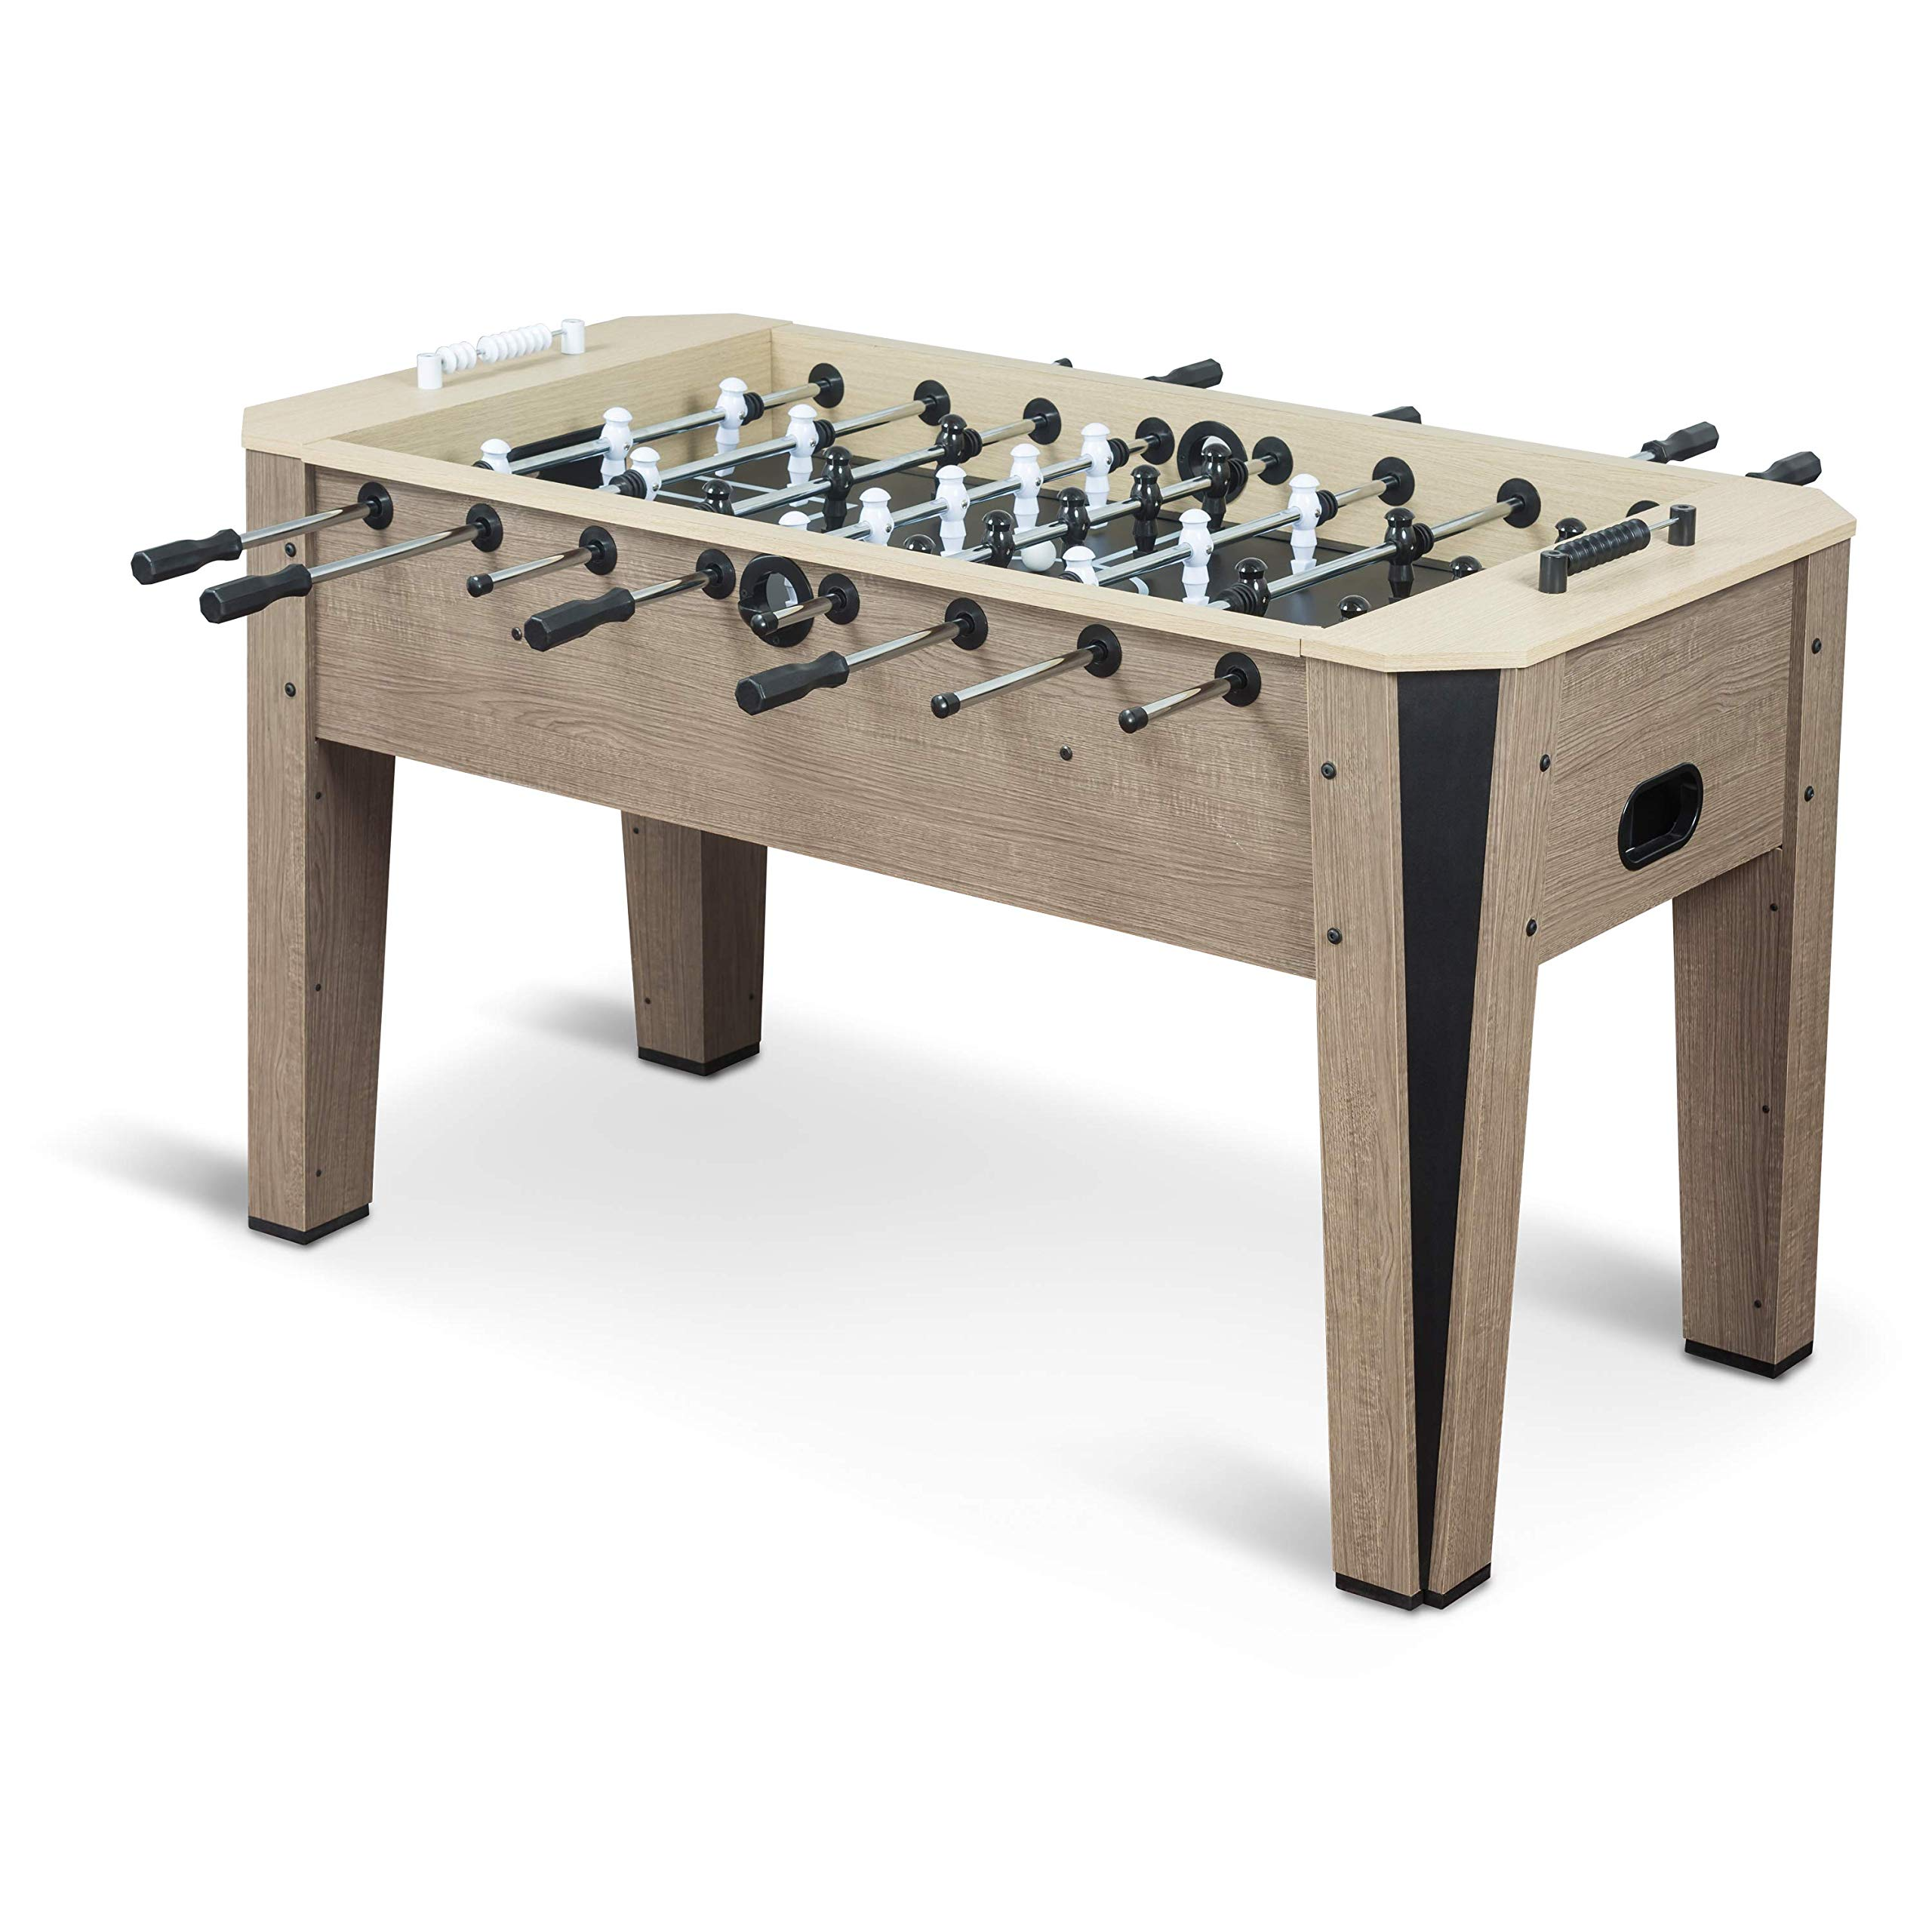 EastPoint Sports Ellington Foosball Table Game - 60 inches - Features Steal Player Rods, Bead Style Scoring, and includes 4 Foosball Balls by EastPoint Sports